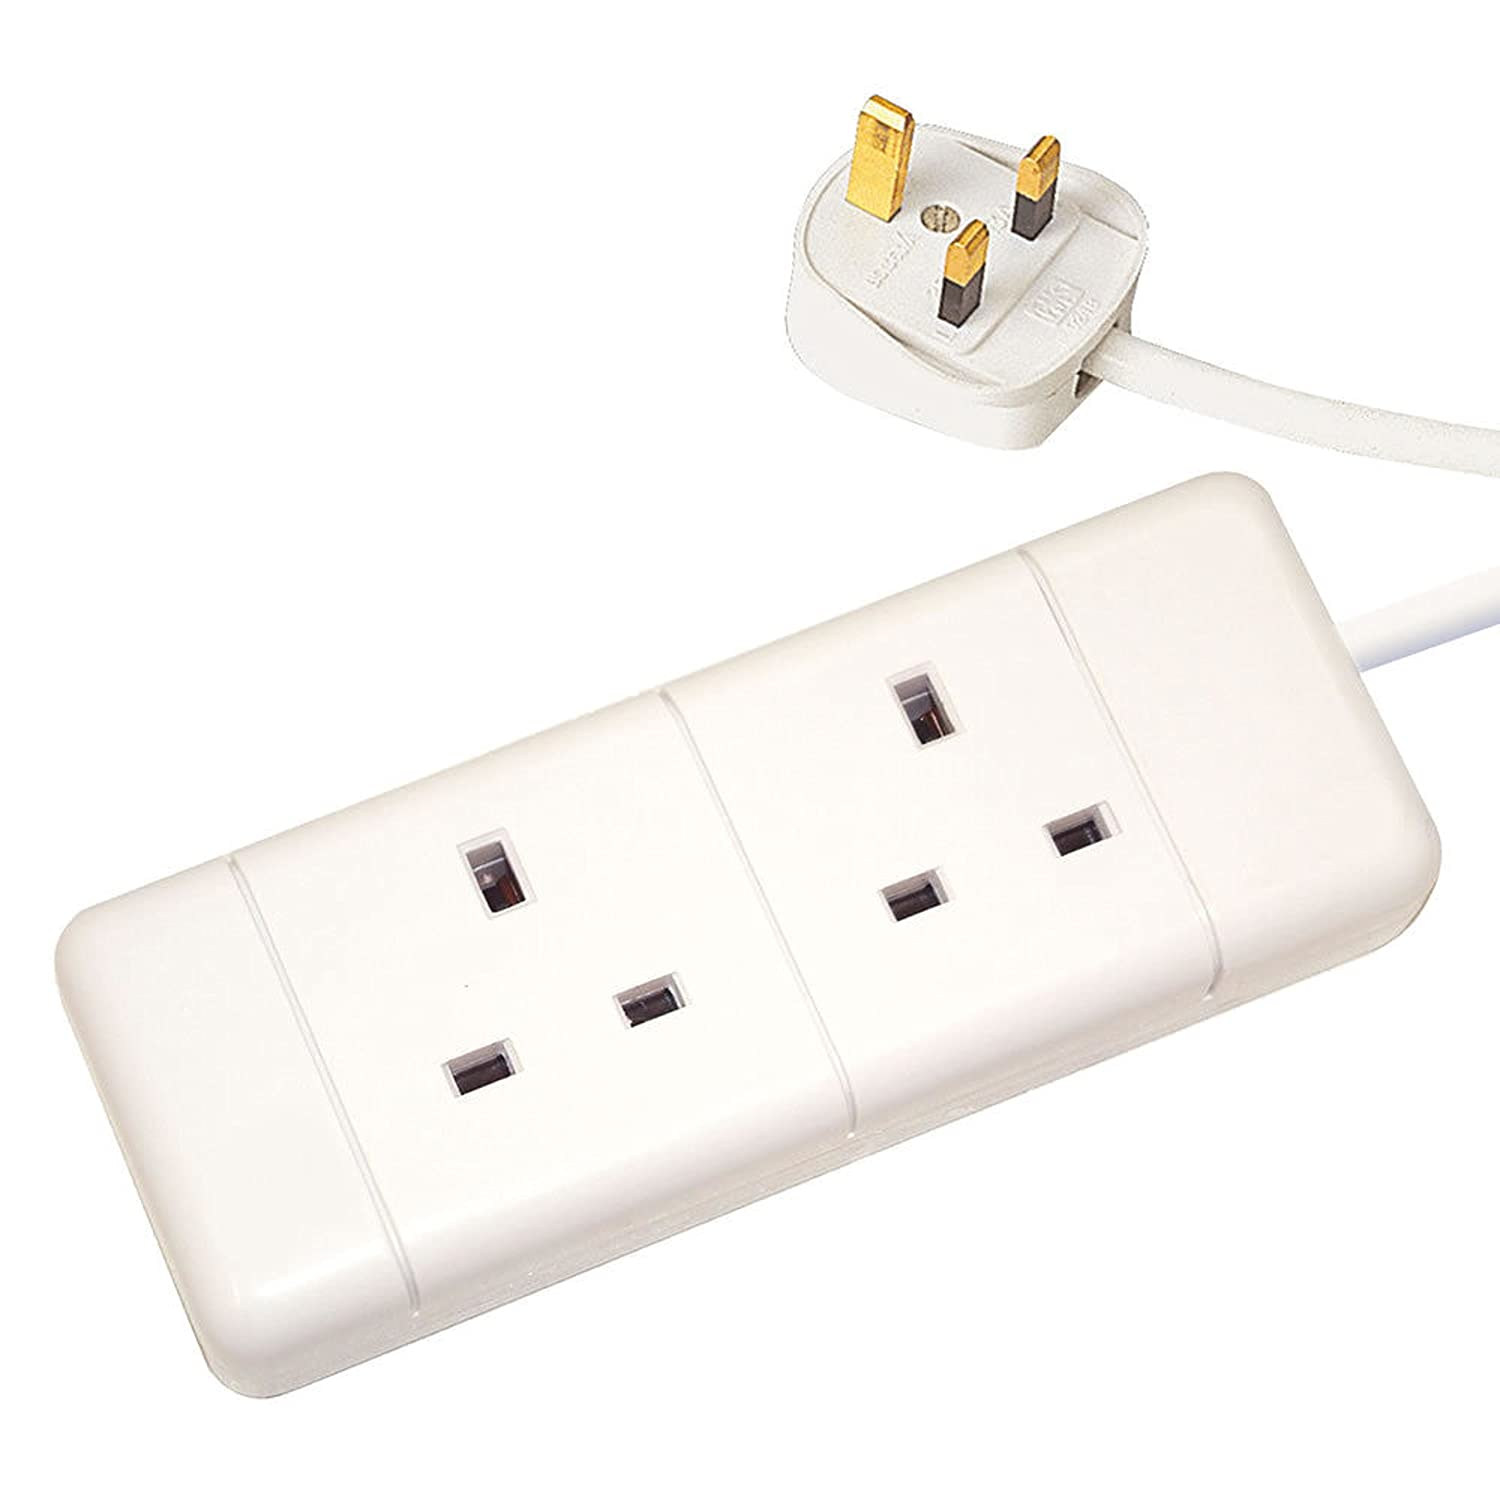 2 Way Gang Extension Socket 13amp 5m Long Lead Cable With Plug White